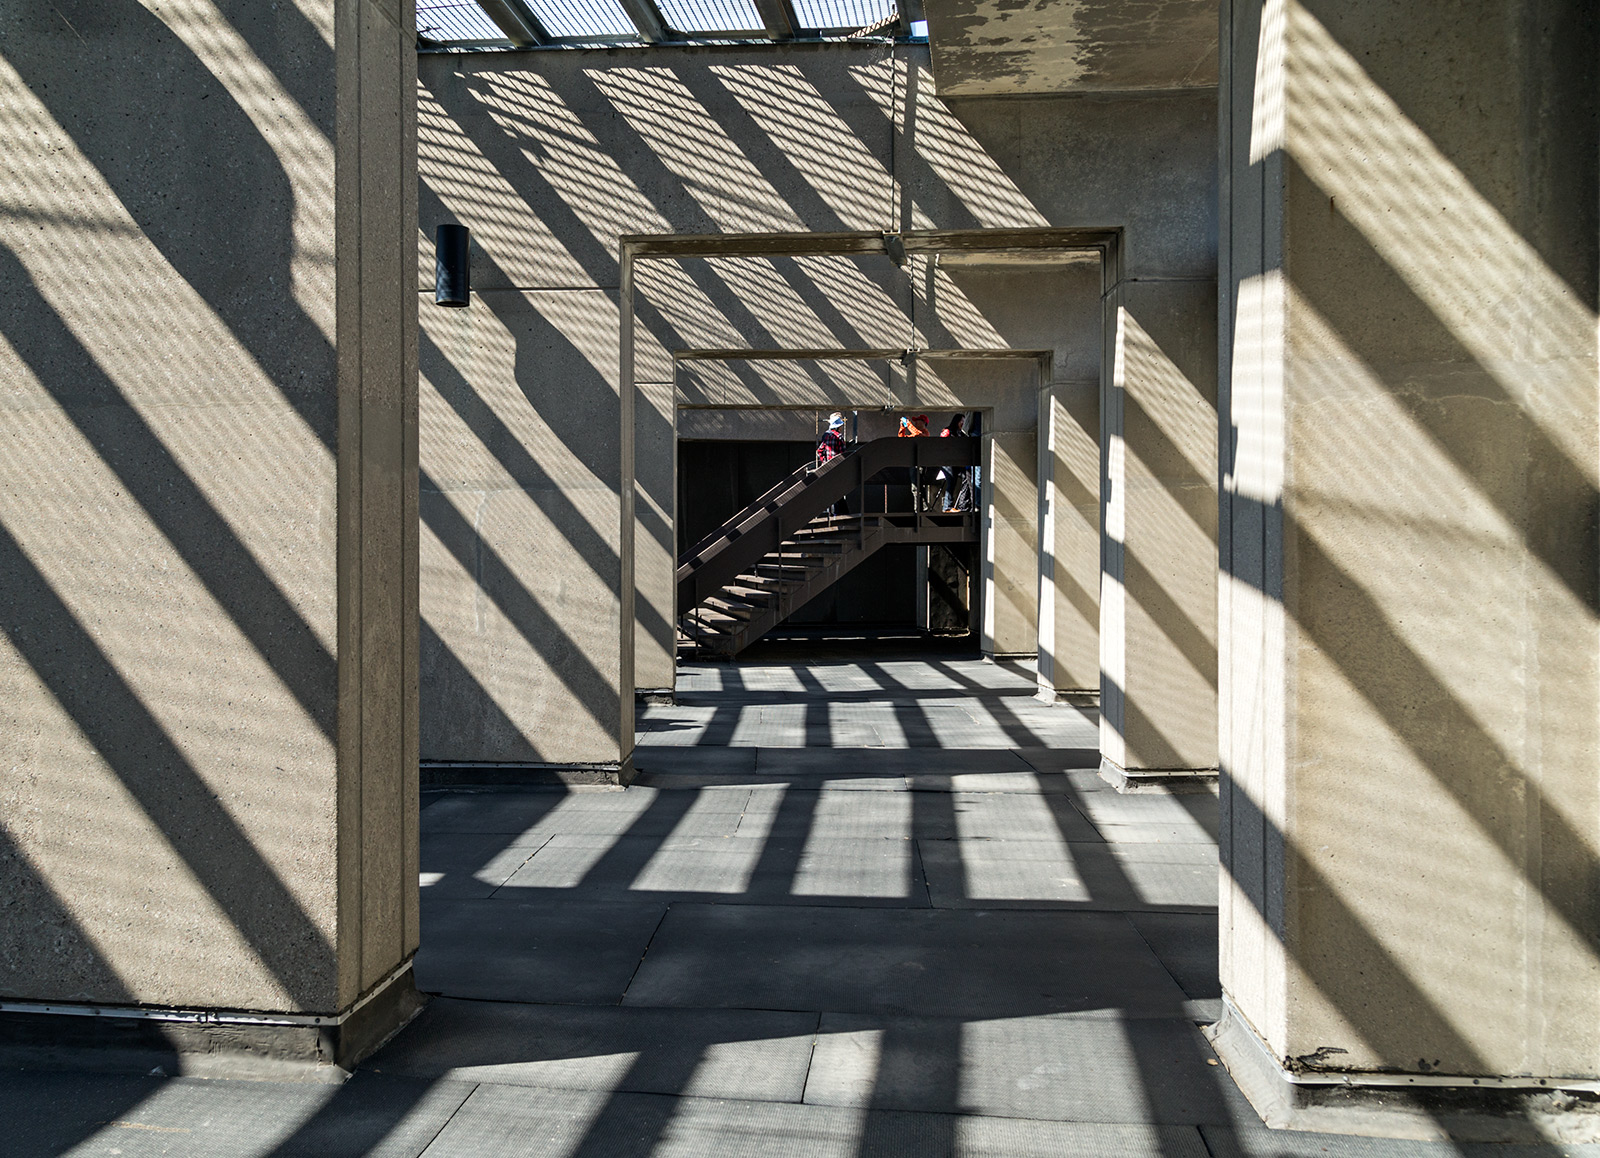 20150527. Shadows enhance City Hall's observation deck. Pic 23/2